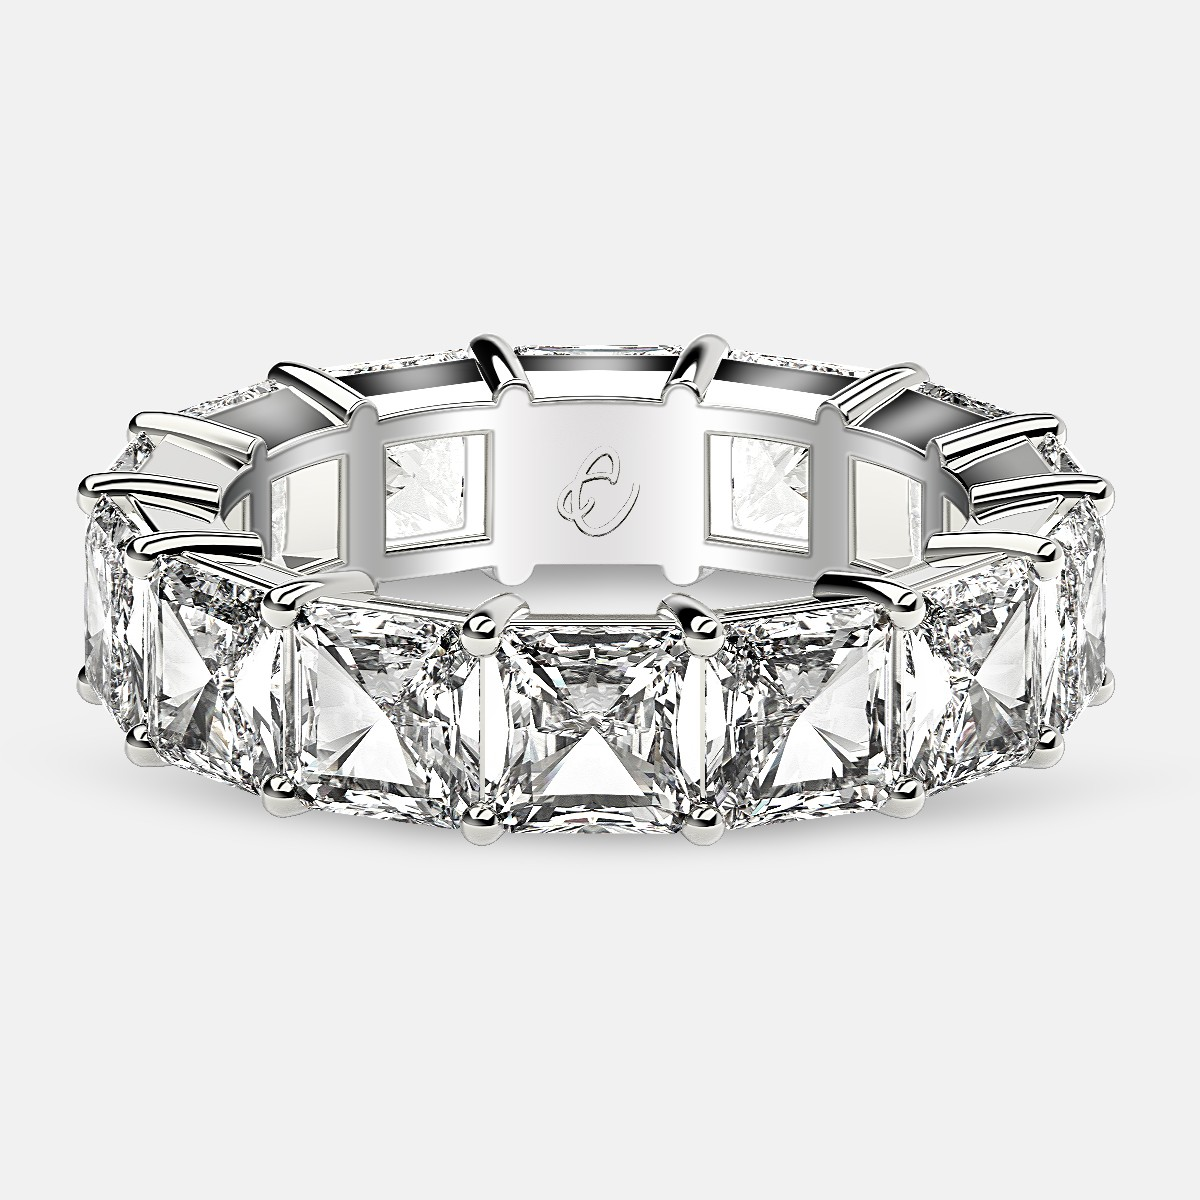 Eternity Ring with Prong Set Radiant Cut Diamonds in 18k White Gold